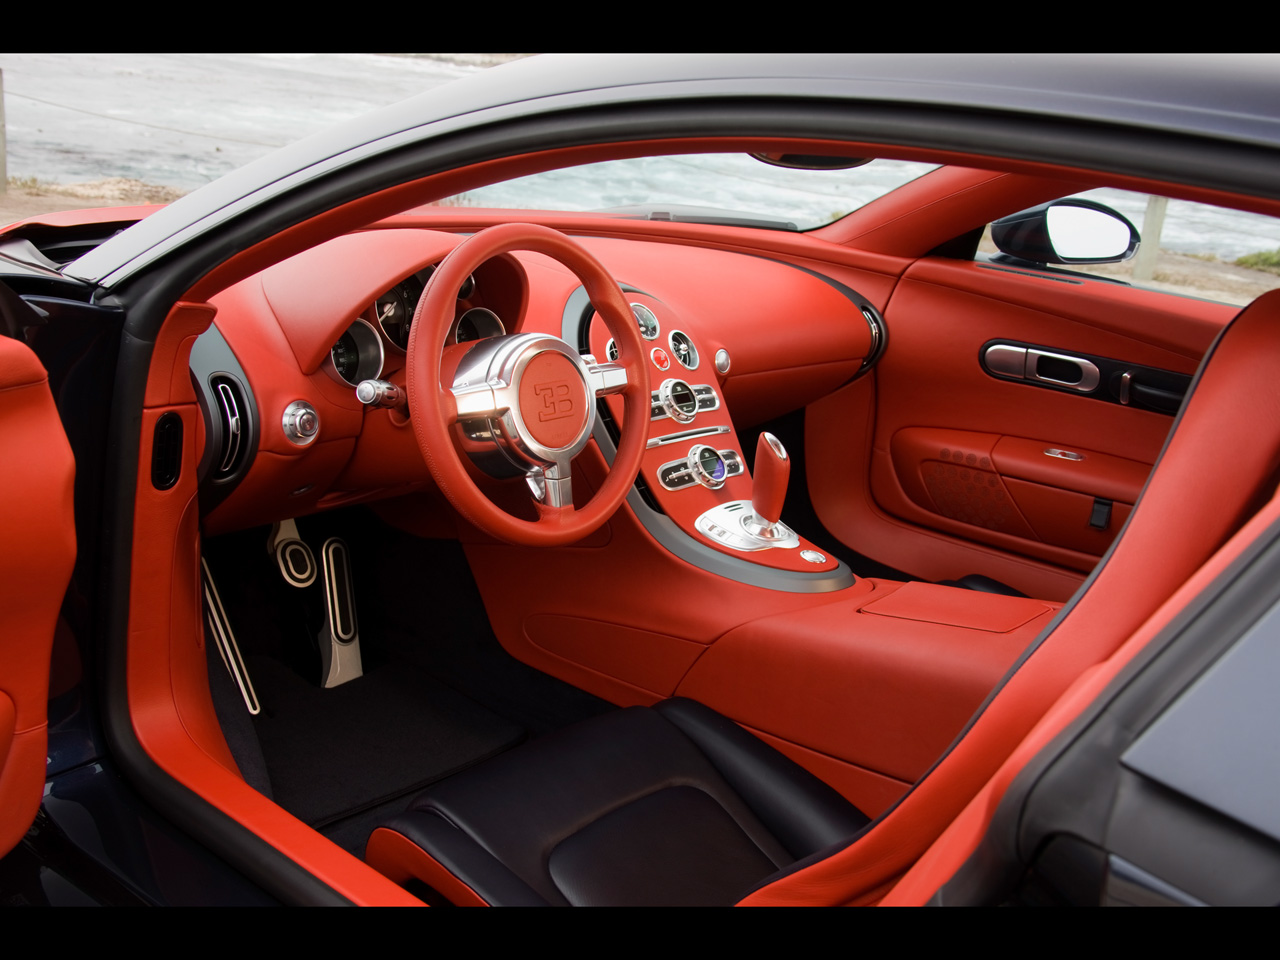 bugatti veyron interior world of cars. Black Bedroom Furniture Sets. Home Design Ideas